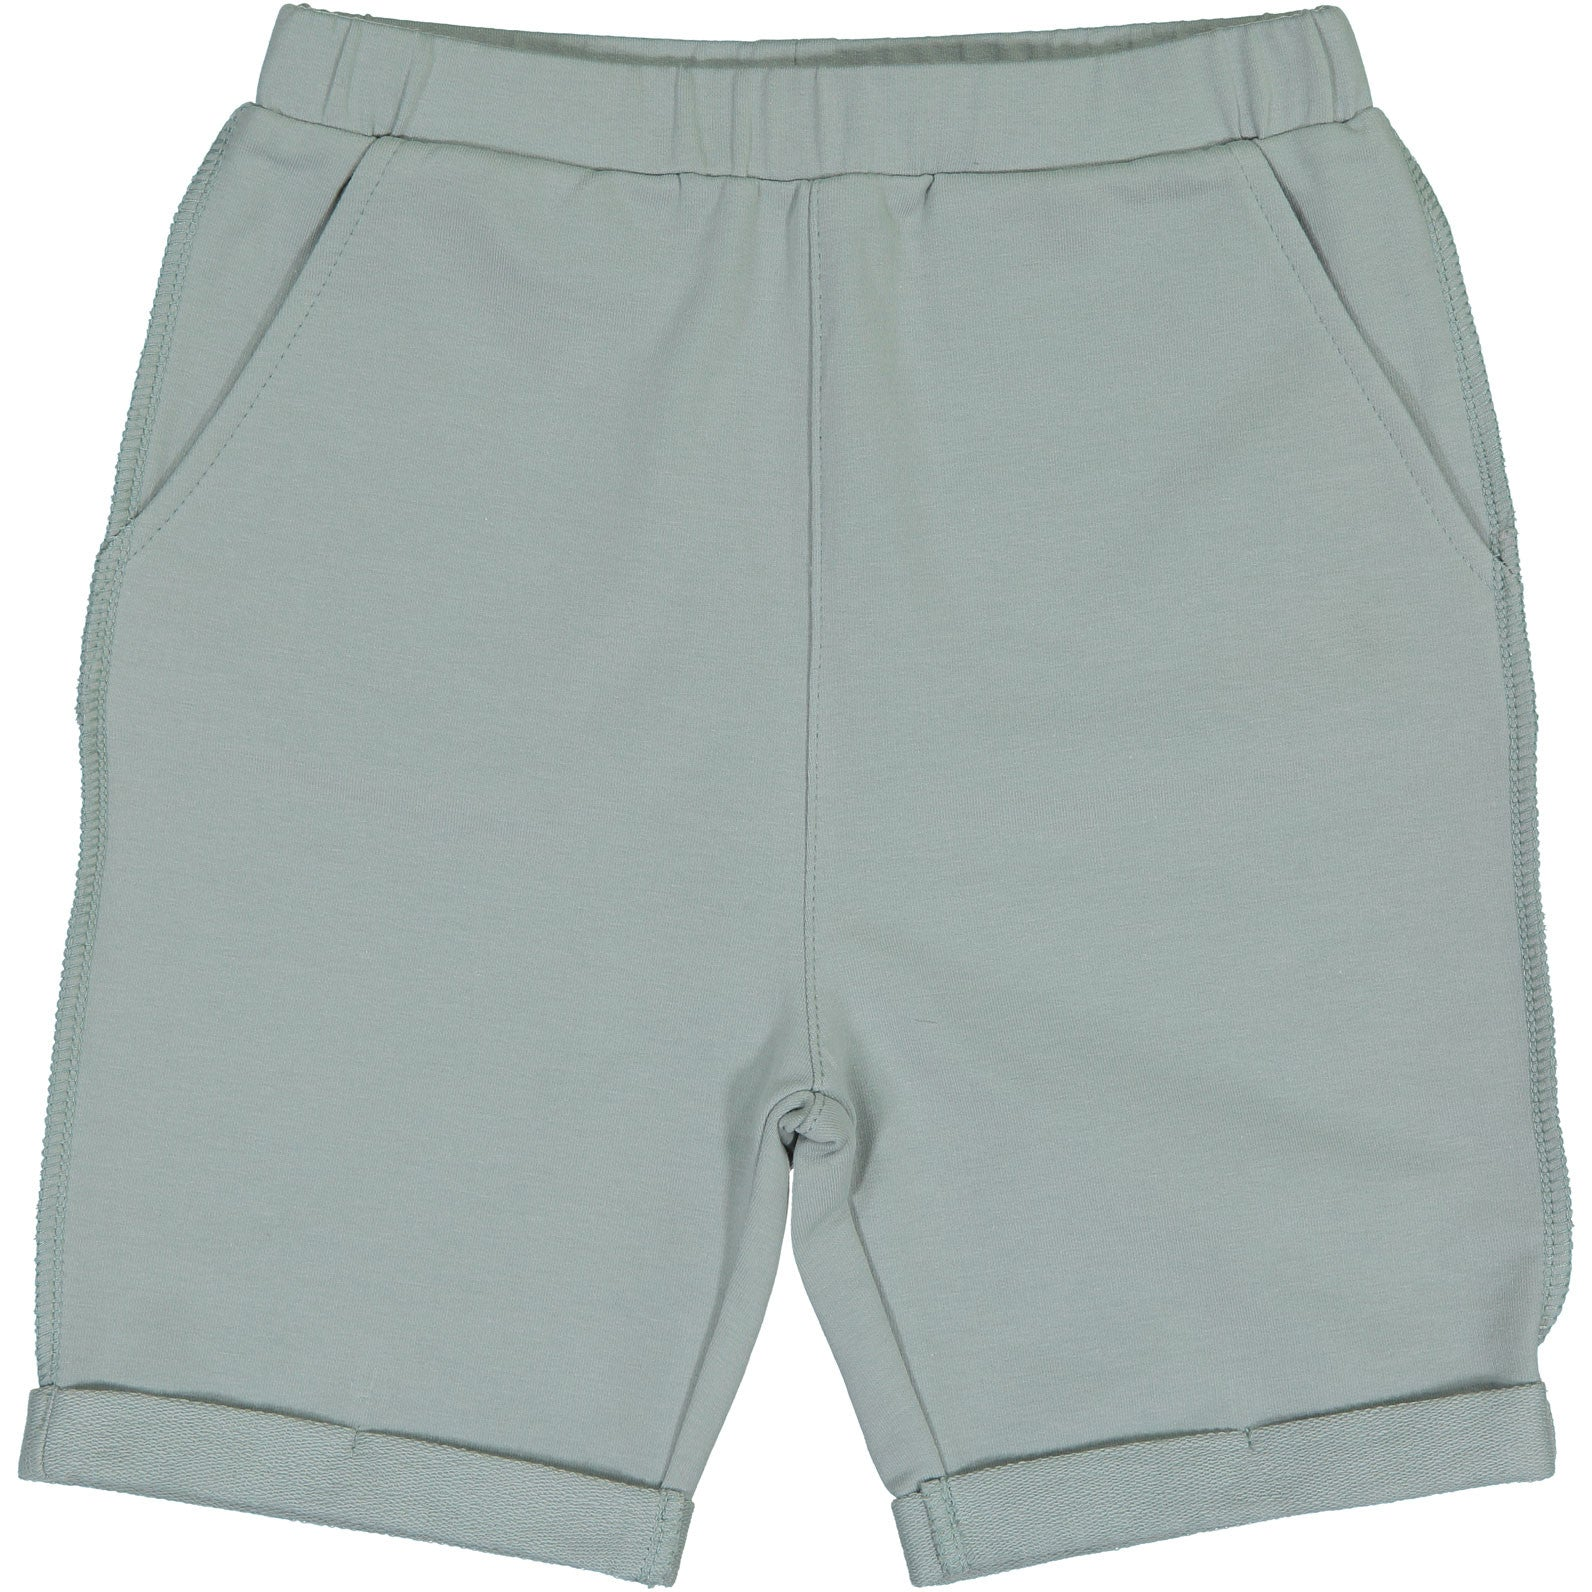 Coco Blanc Silver Blue Terry Shorts - Ladida